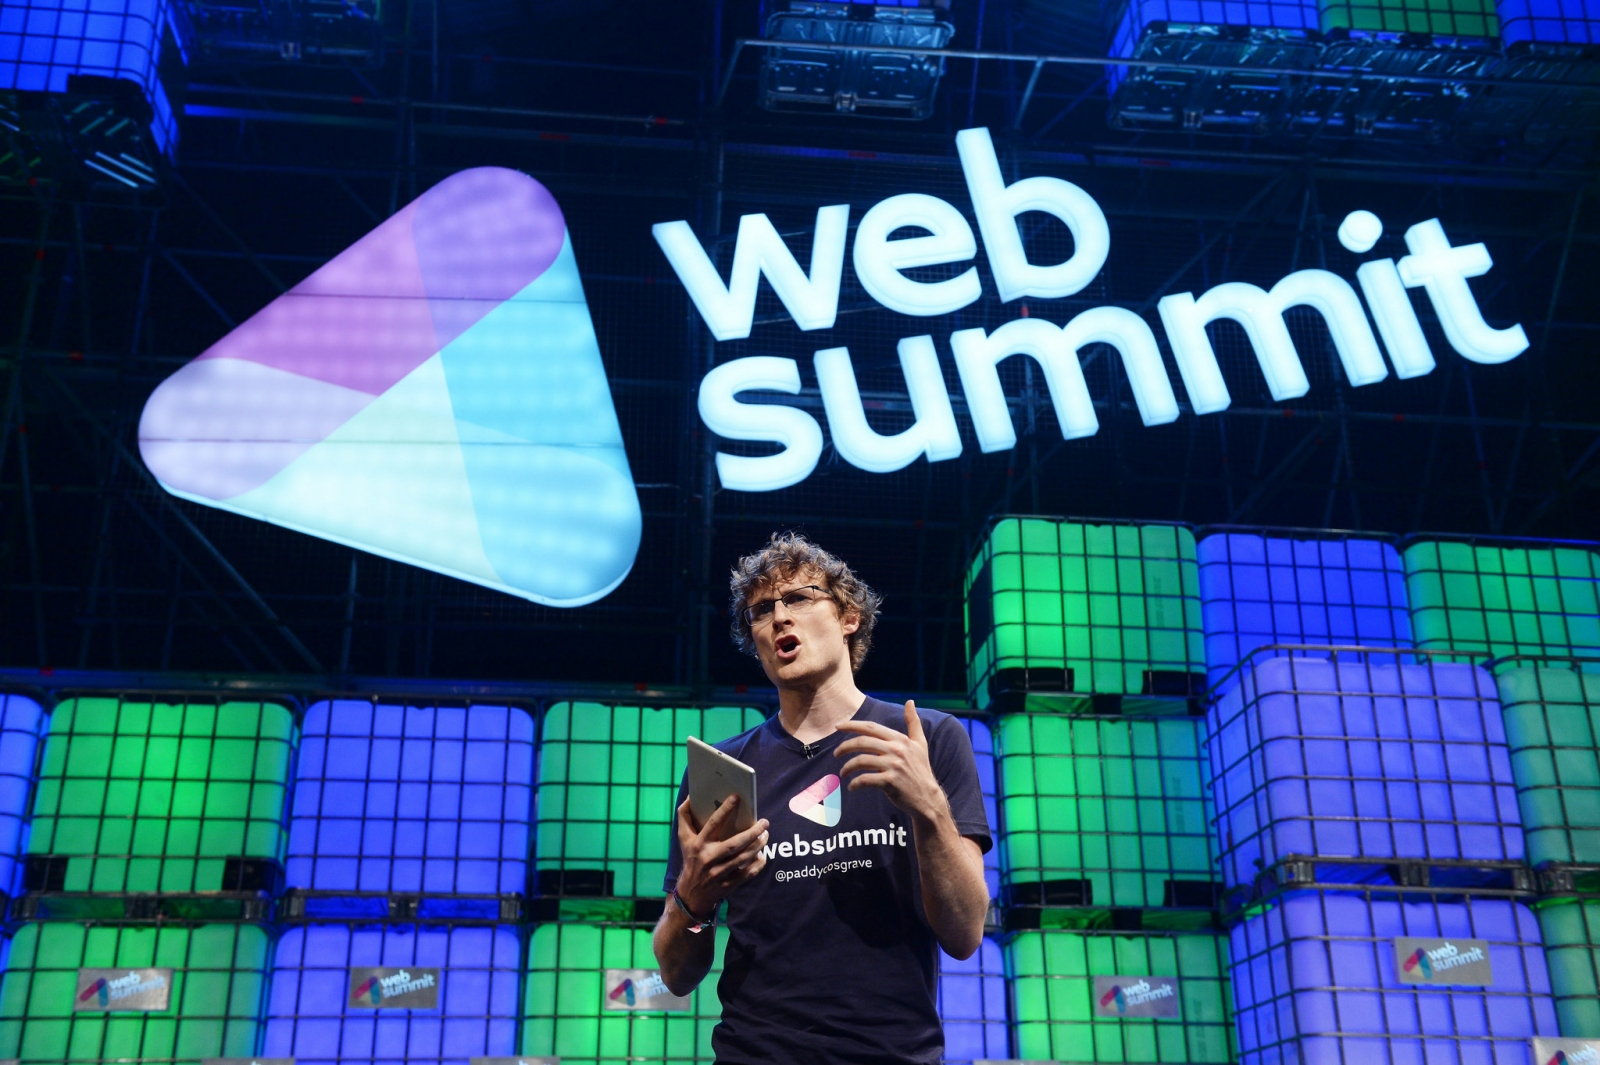 Web Summit 2014 Paddy Cosgrave WiFi